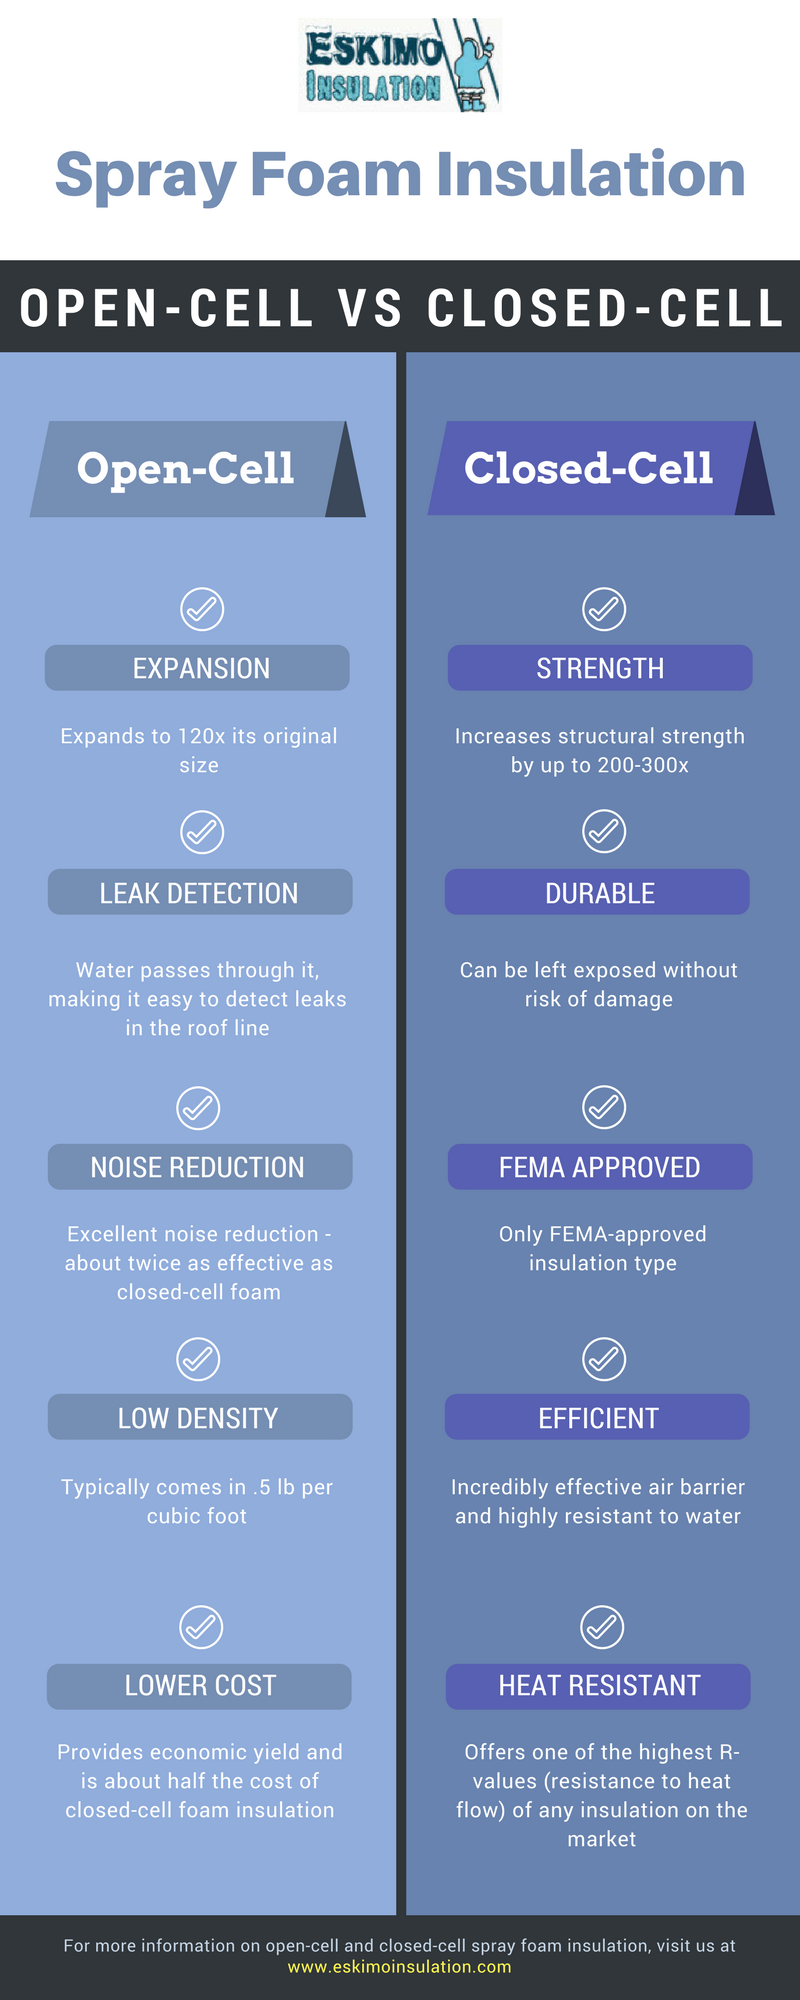 Open Cell Vs Closed Cell Insulation Infographic Spray Foam Insulation Spray Foam Insulation